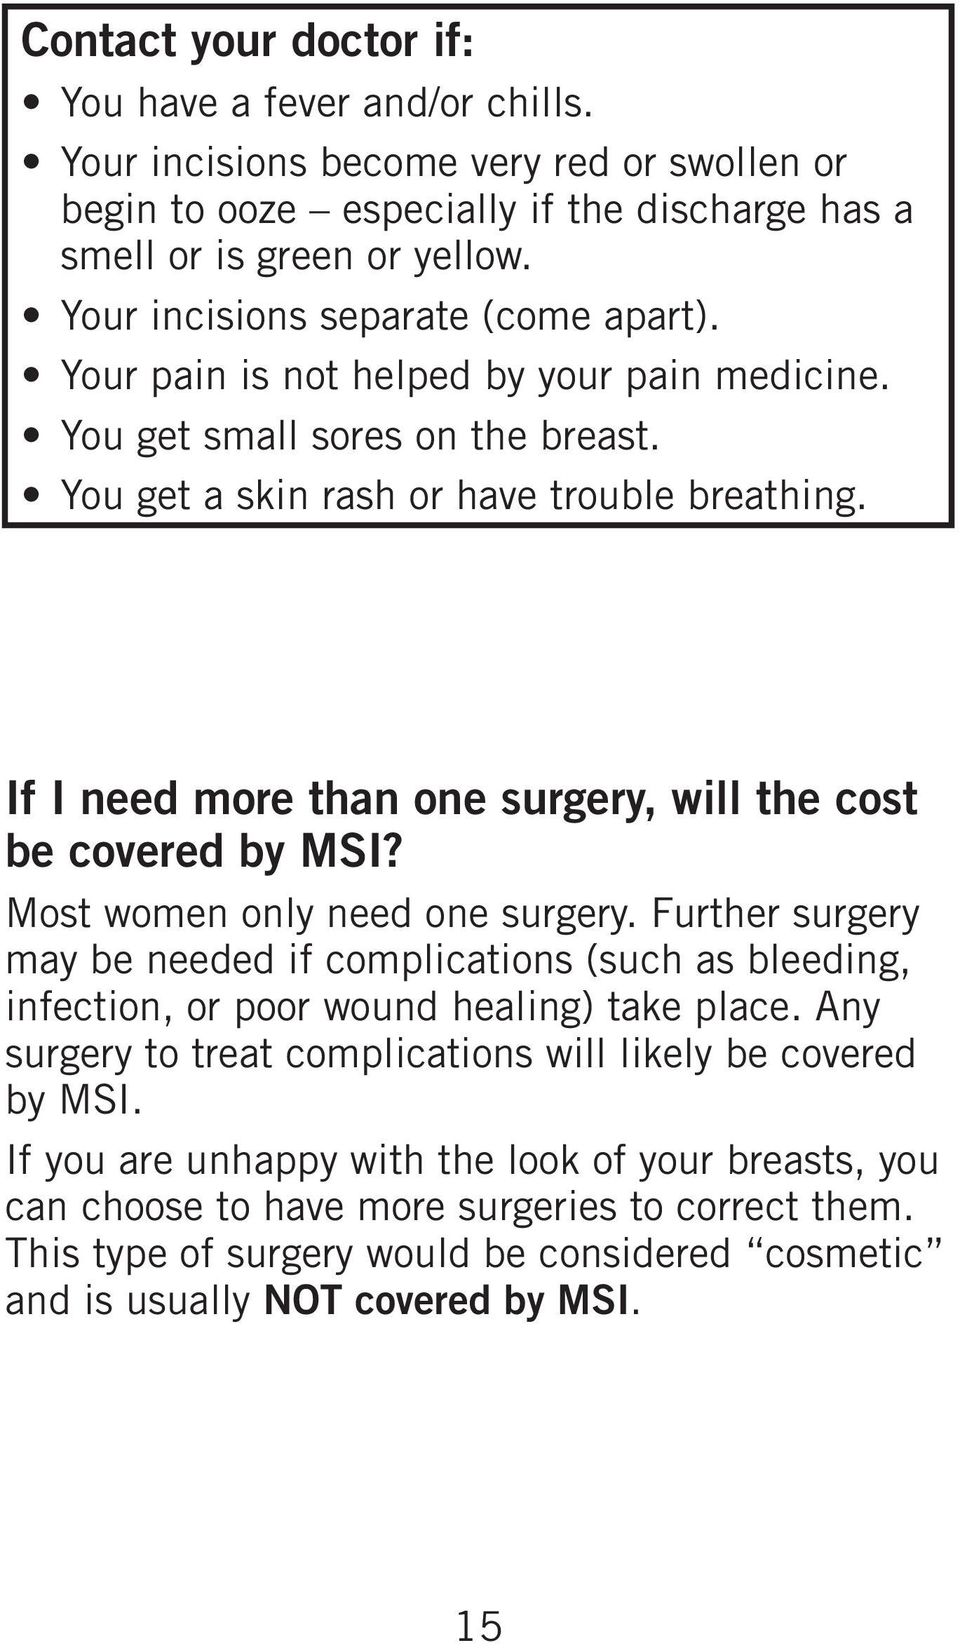 If I need more than one surgery, will the cost be covered by MSI? Most women only need one surgery.